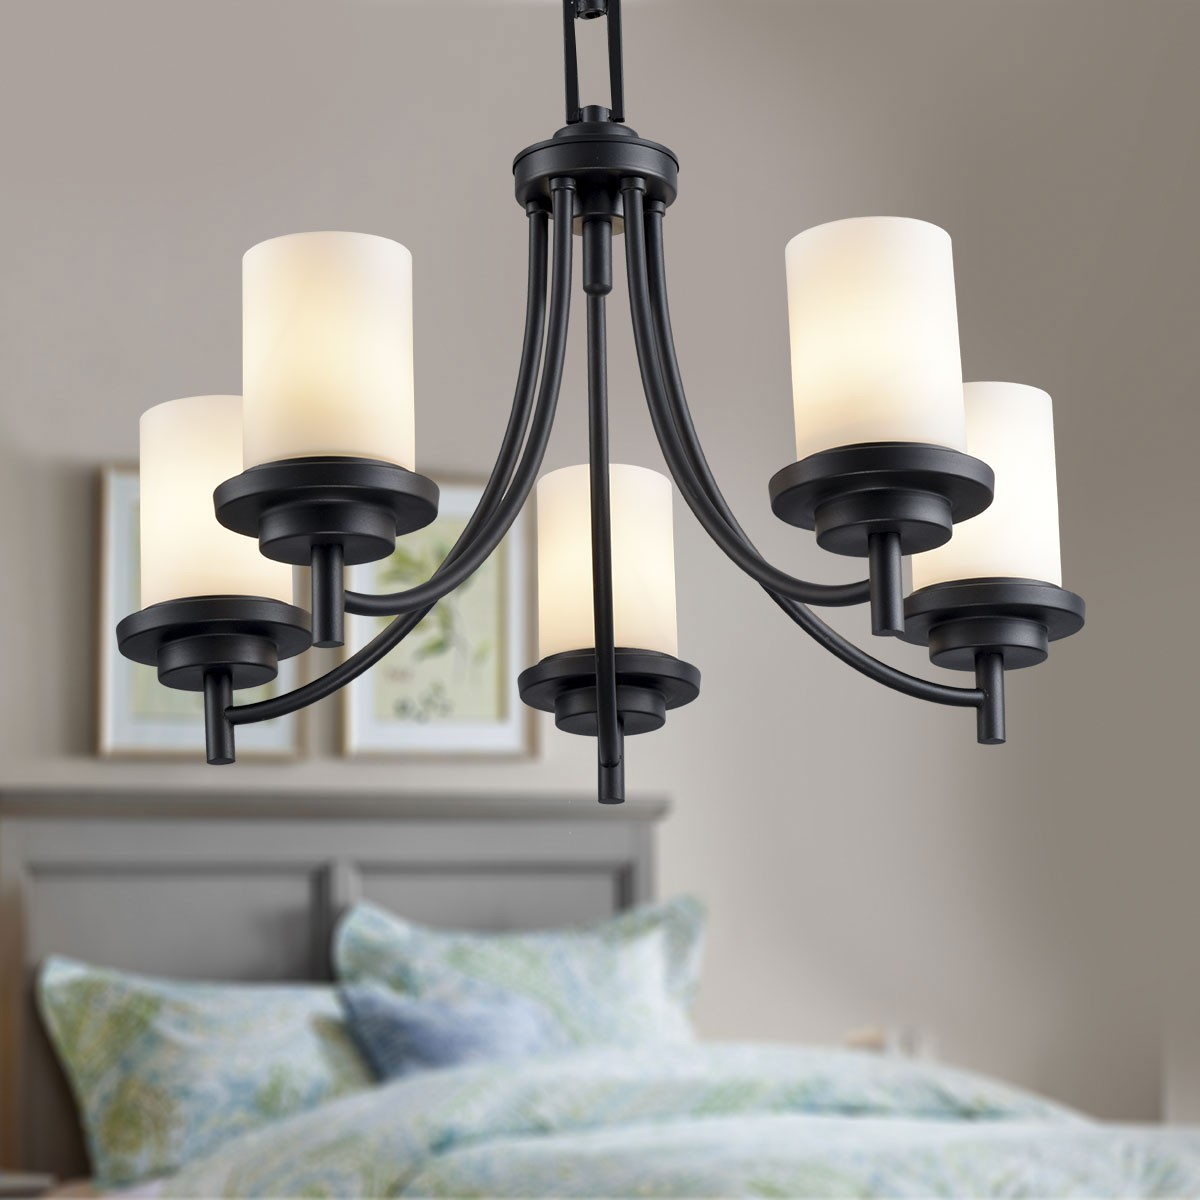 5-Light Black Wrought Iron Chandelier with Glass Shades (DK-8110-5)